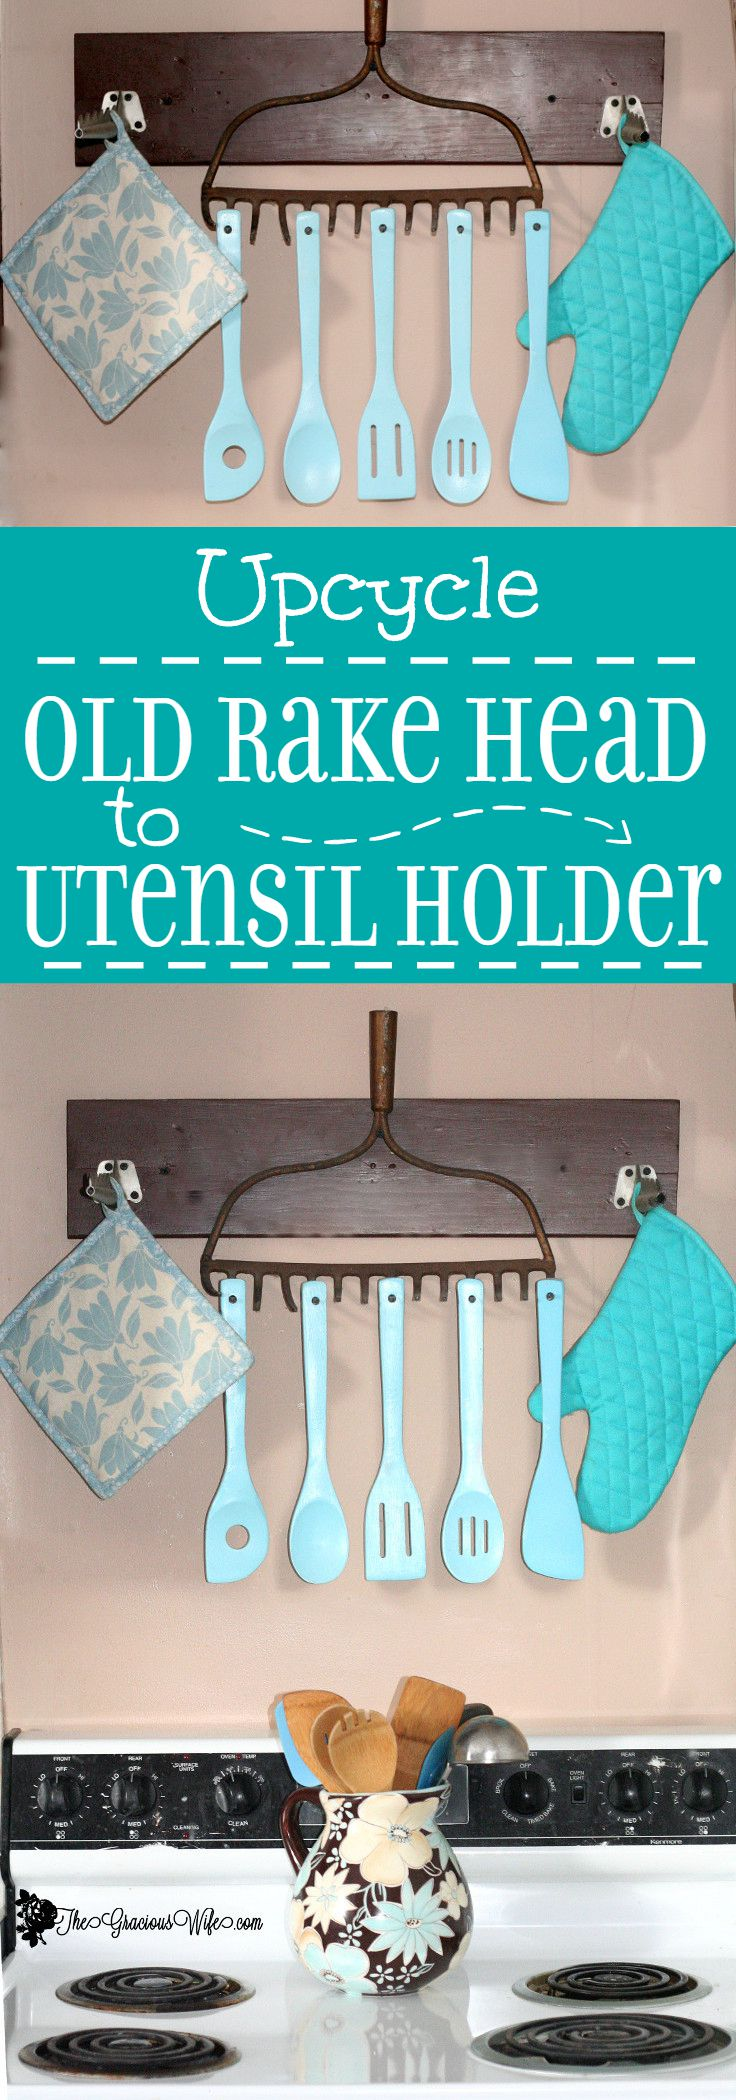 Upcycle: Old Rake Head to Rustic Utensil Holder | The Gracious Wife